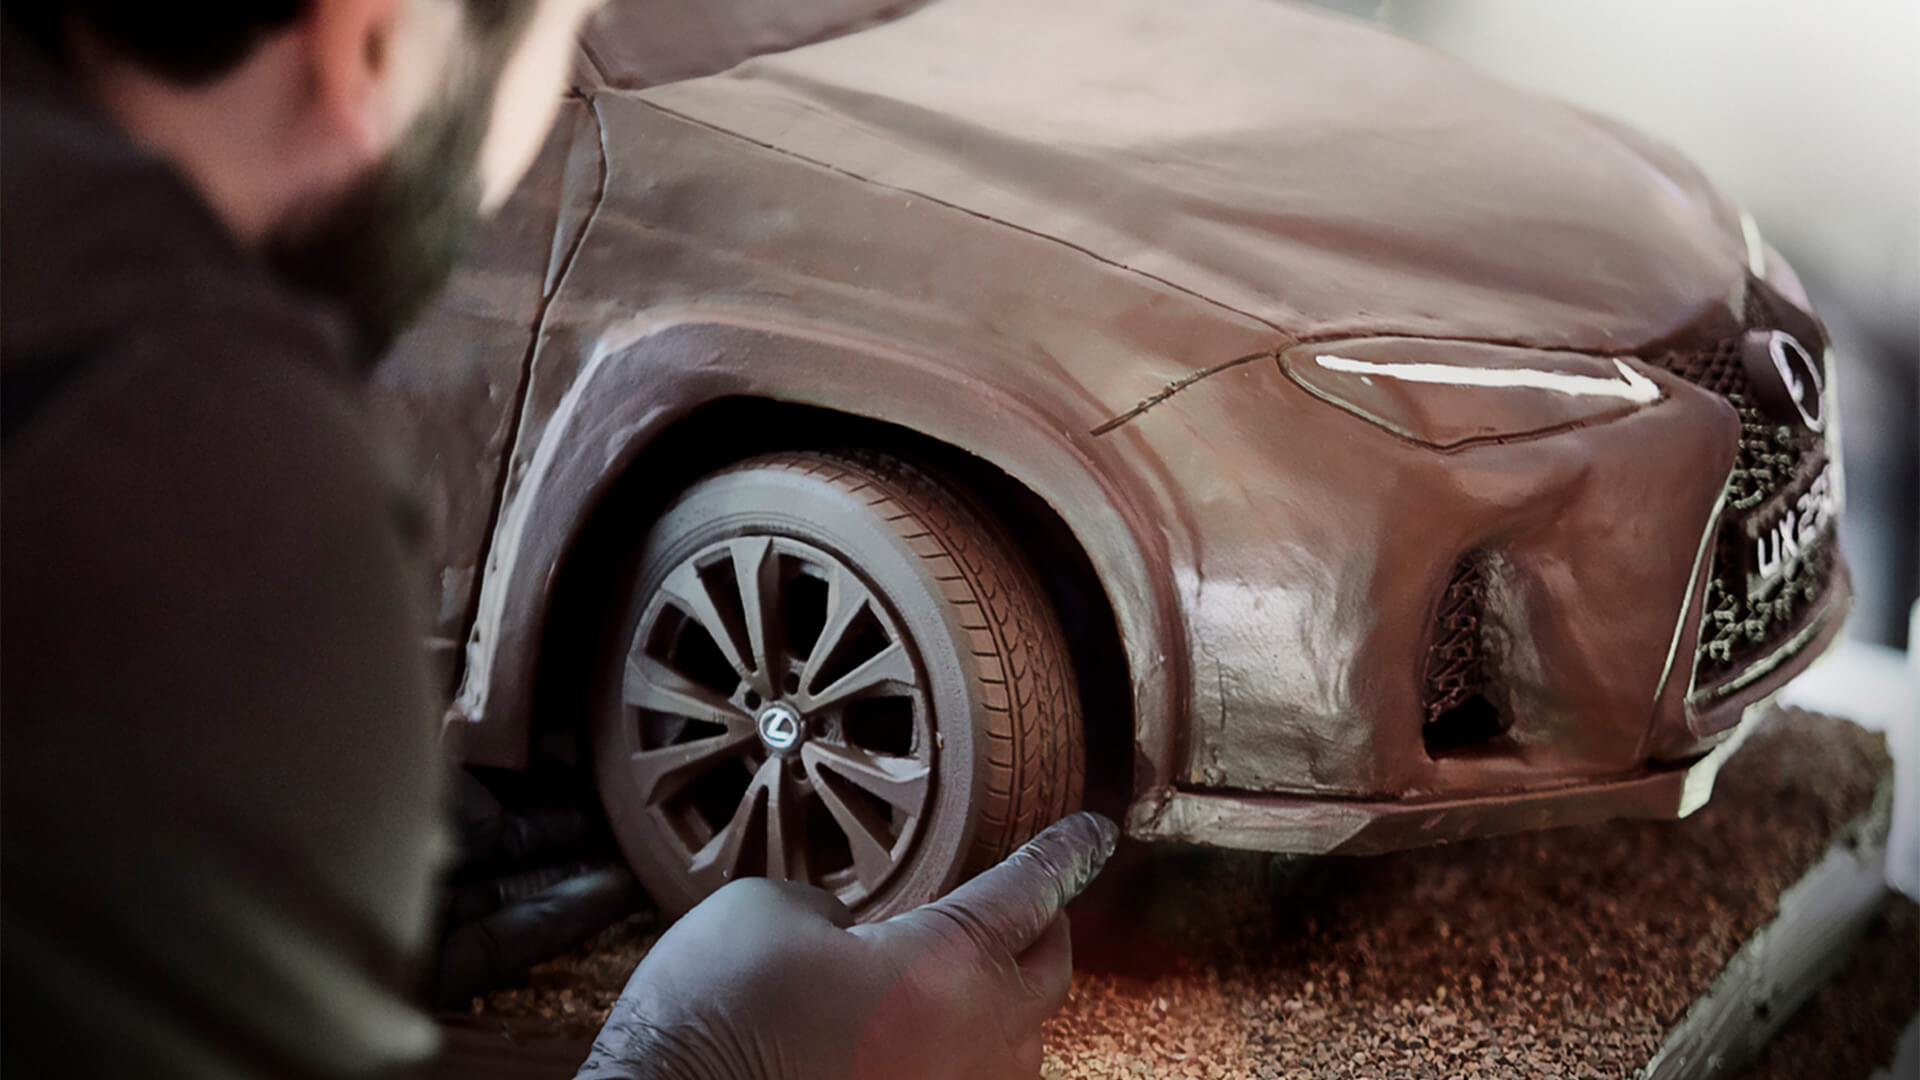 2019 lexus lounge UX Chocolate Car 1920x1080 12